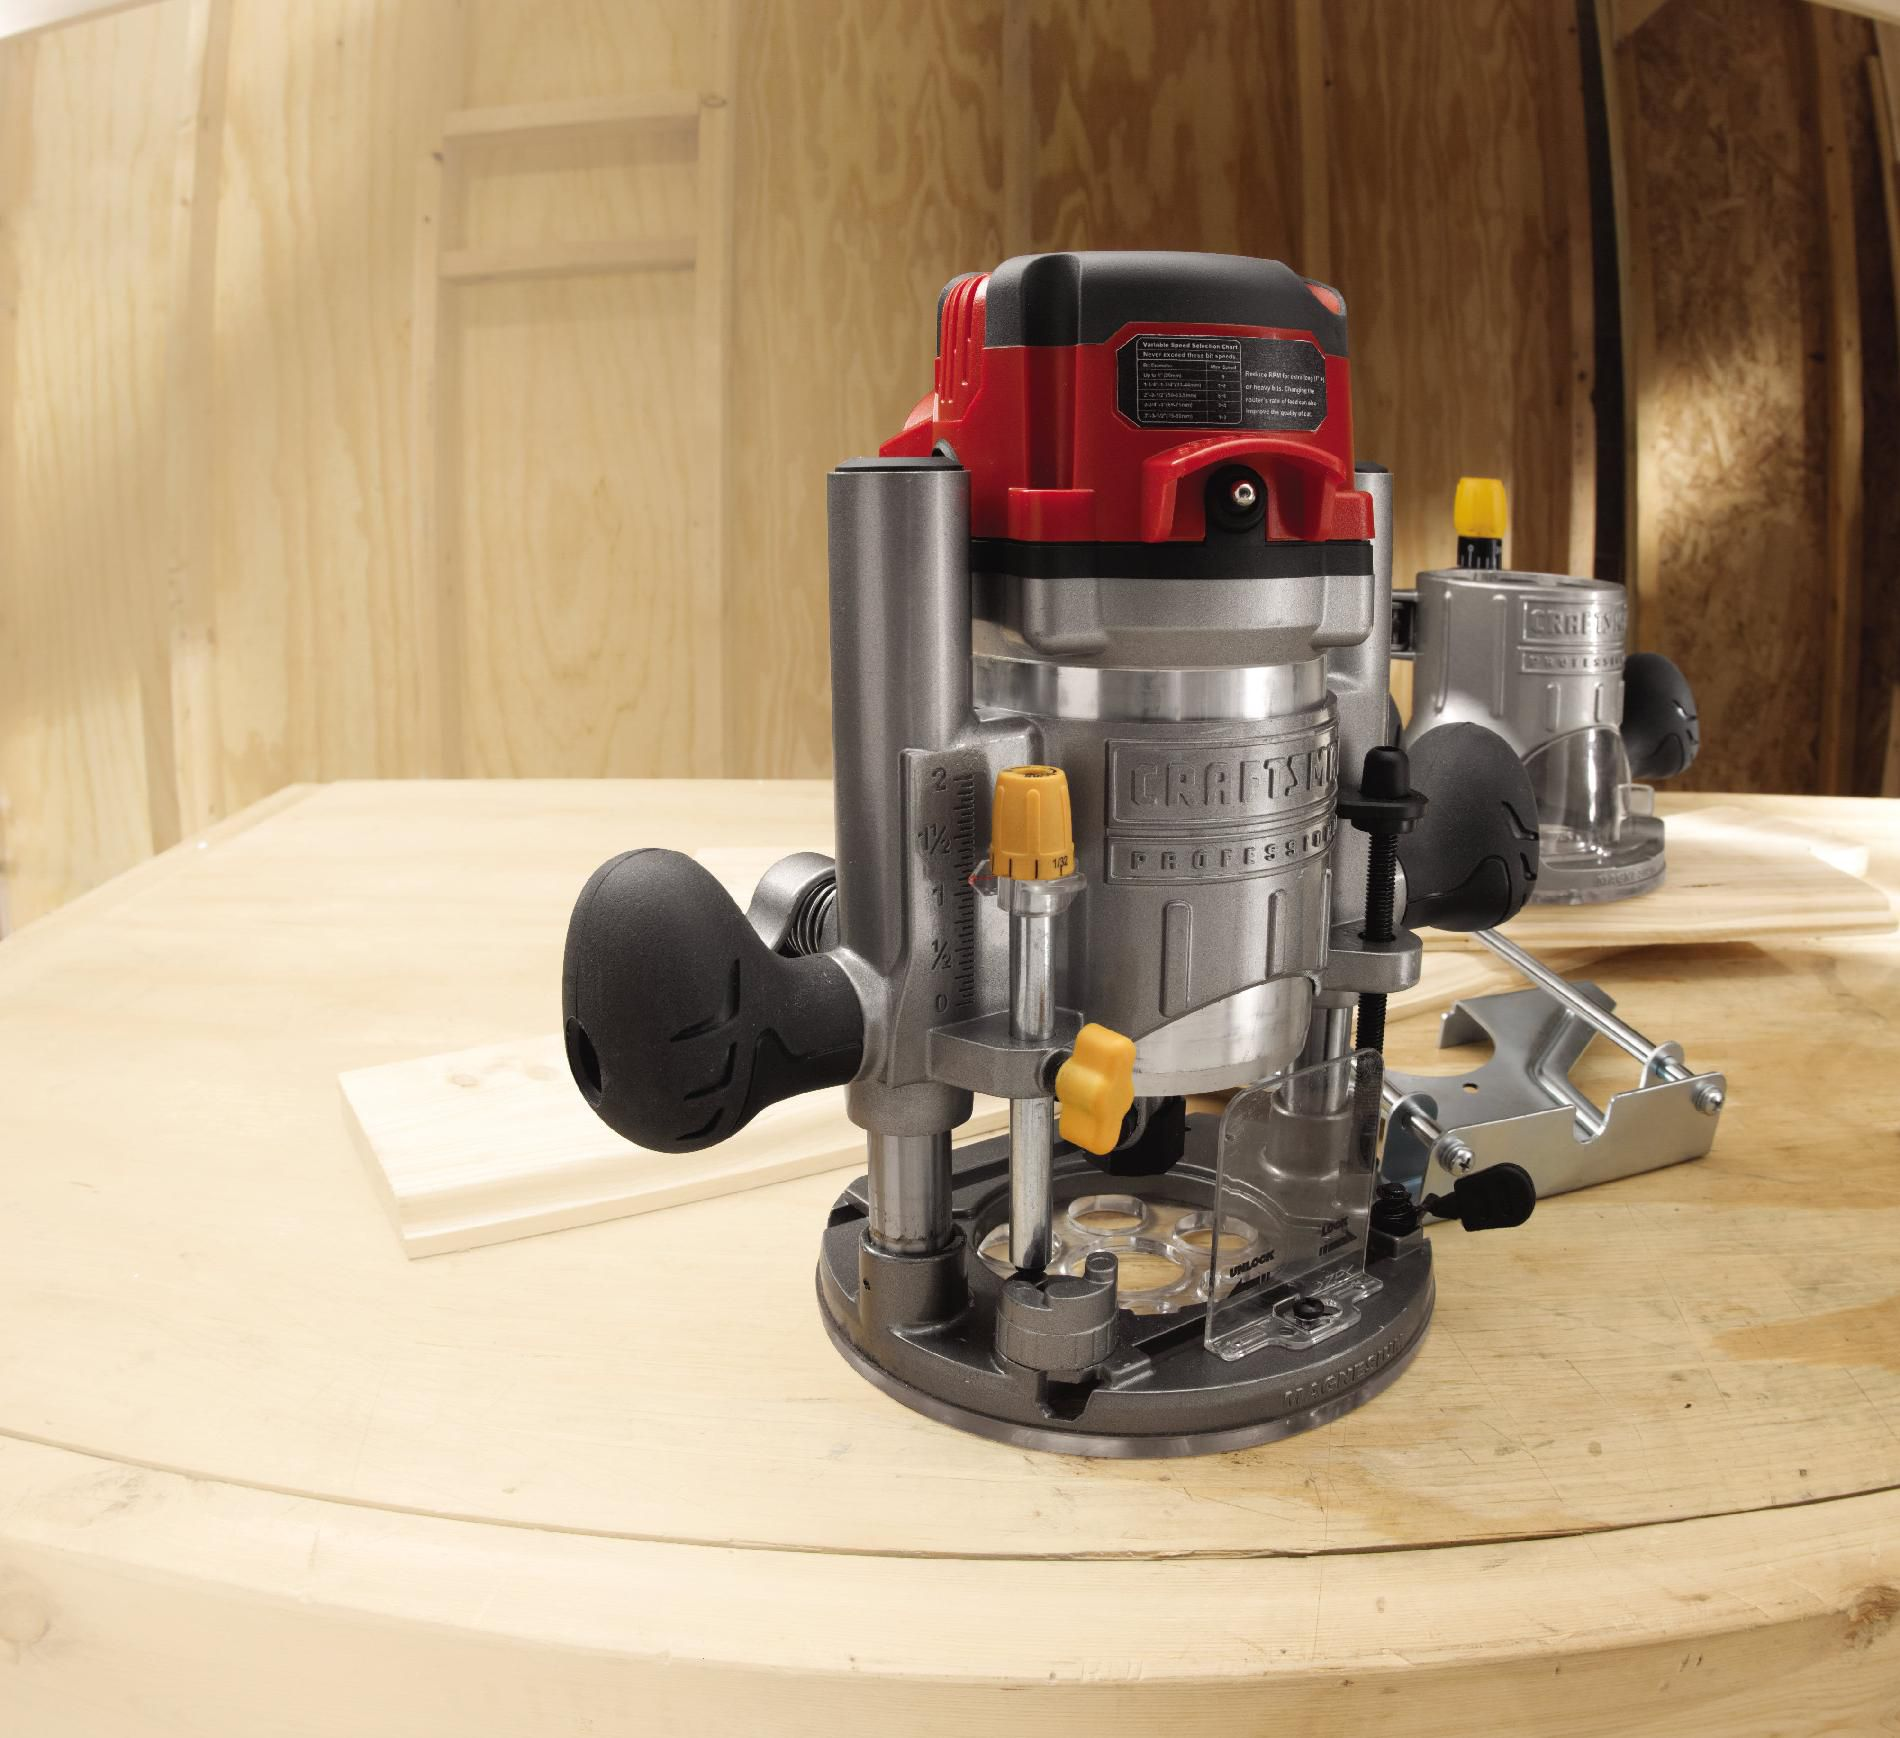 Craftsman 14-amp, 2.5-hp Fixed/Plunge Base Router with Soft Start Technology